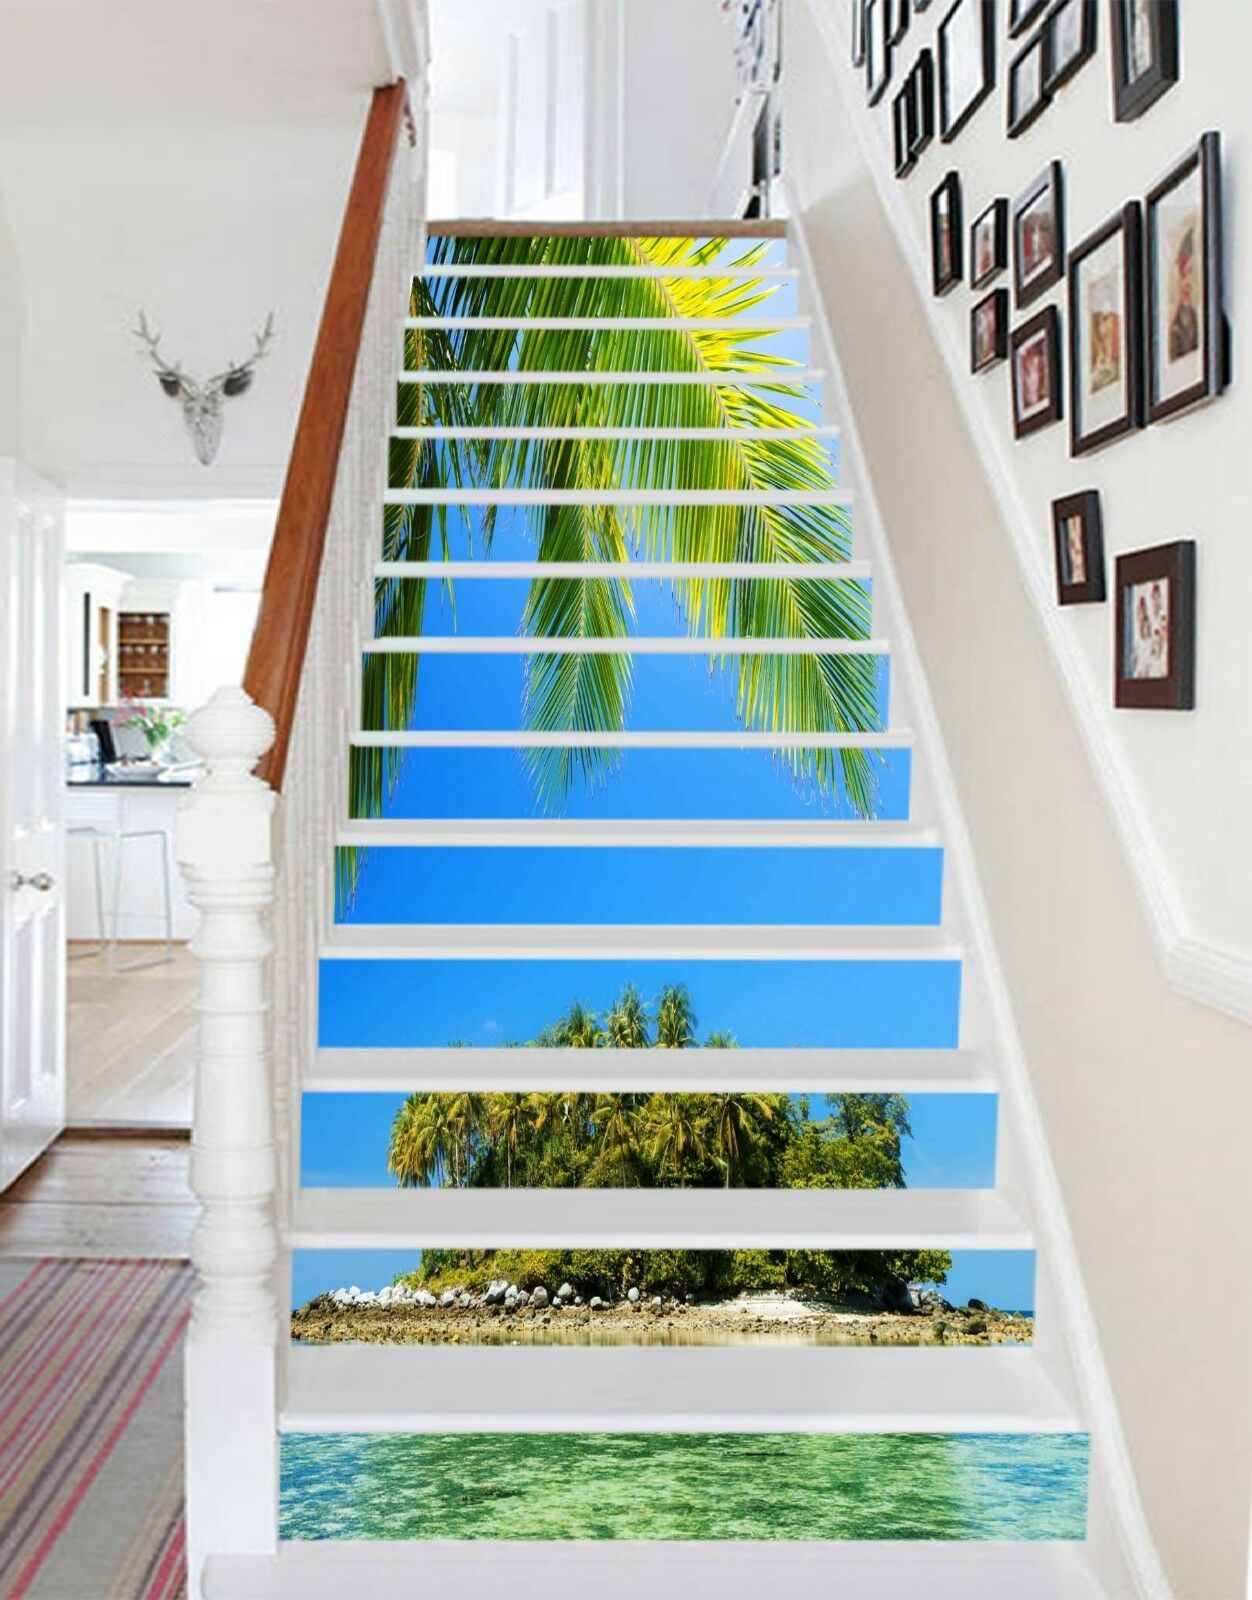 3D Islands Sea Stair Risers Decoration Photo Mural Vinyl Decal Wallpaper US